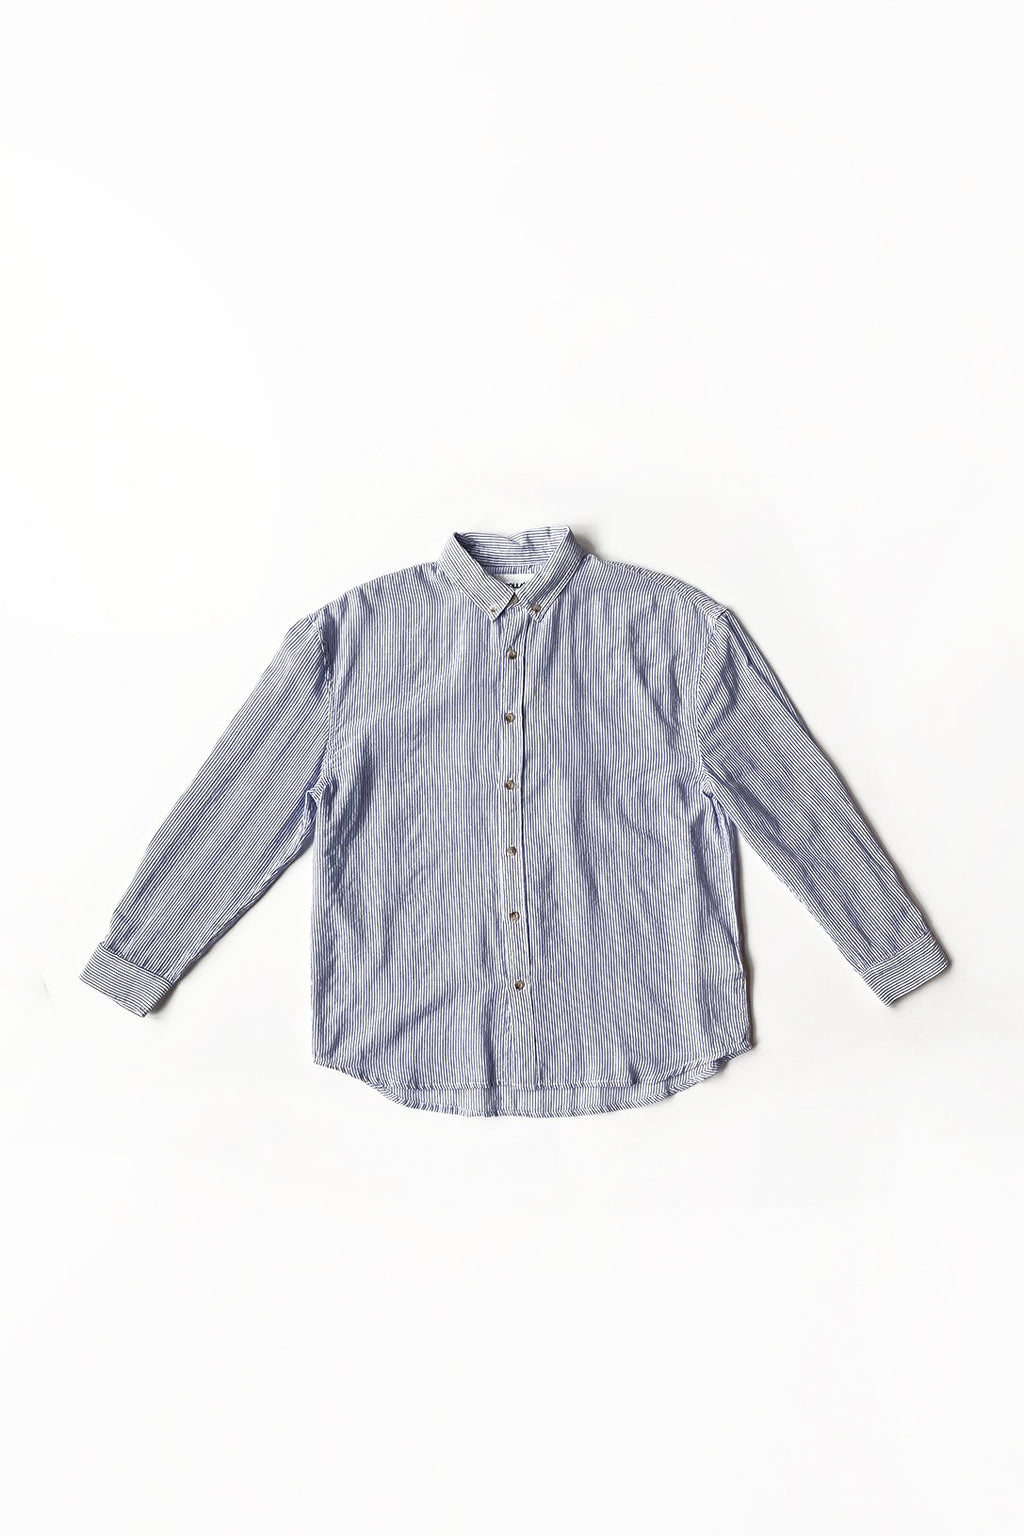 ROLLA'S Slouch Stripe Shirt